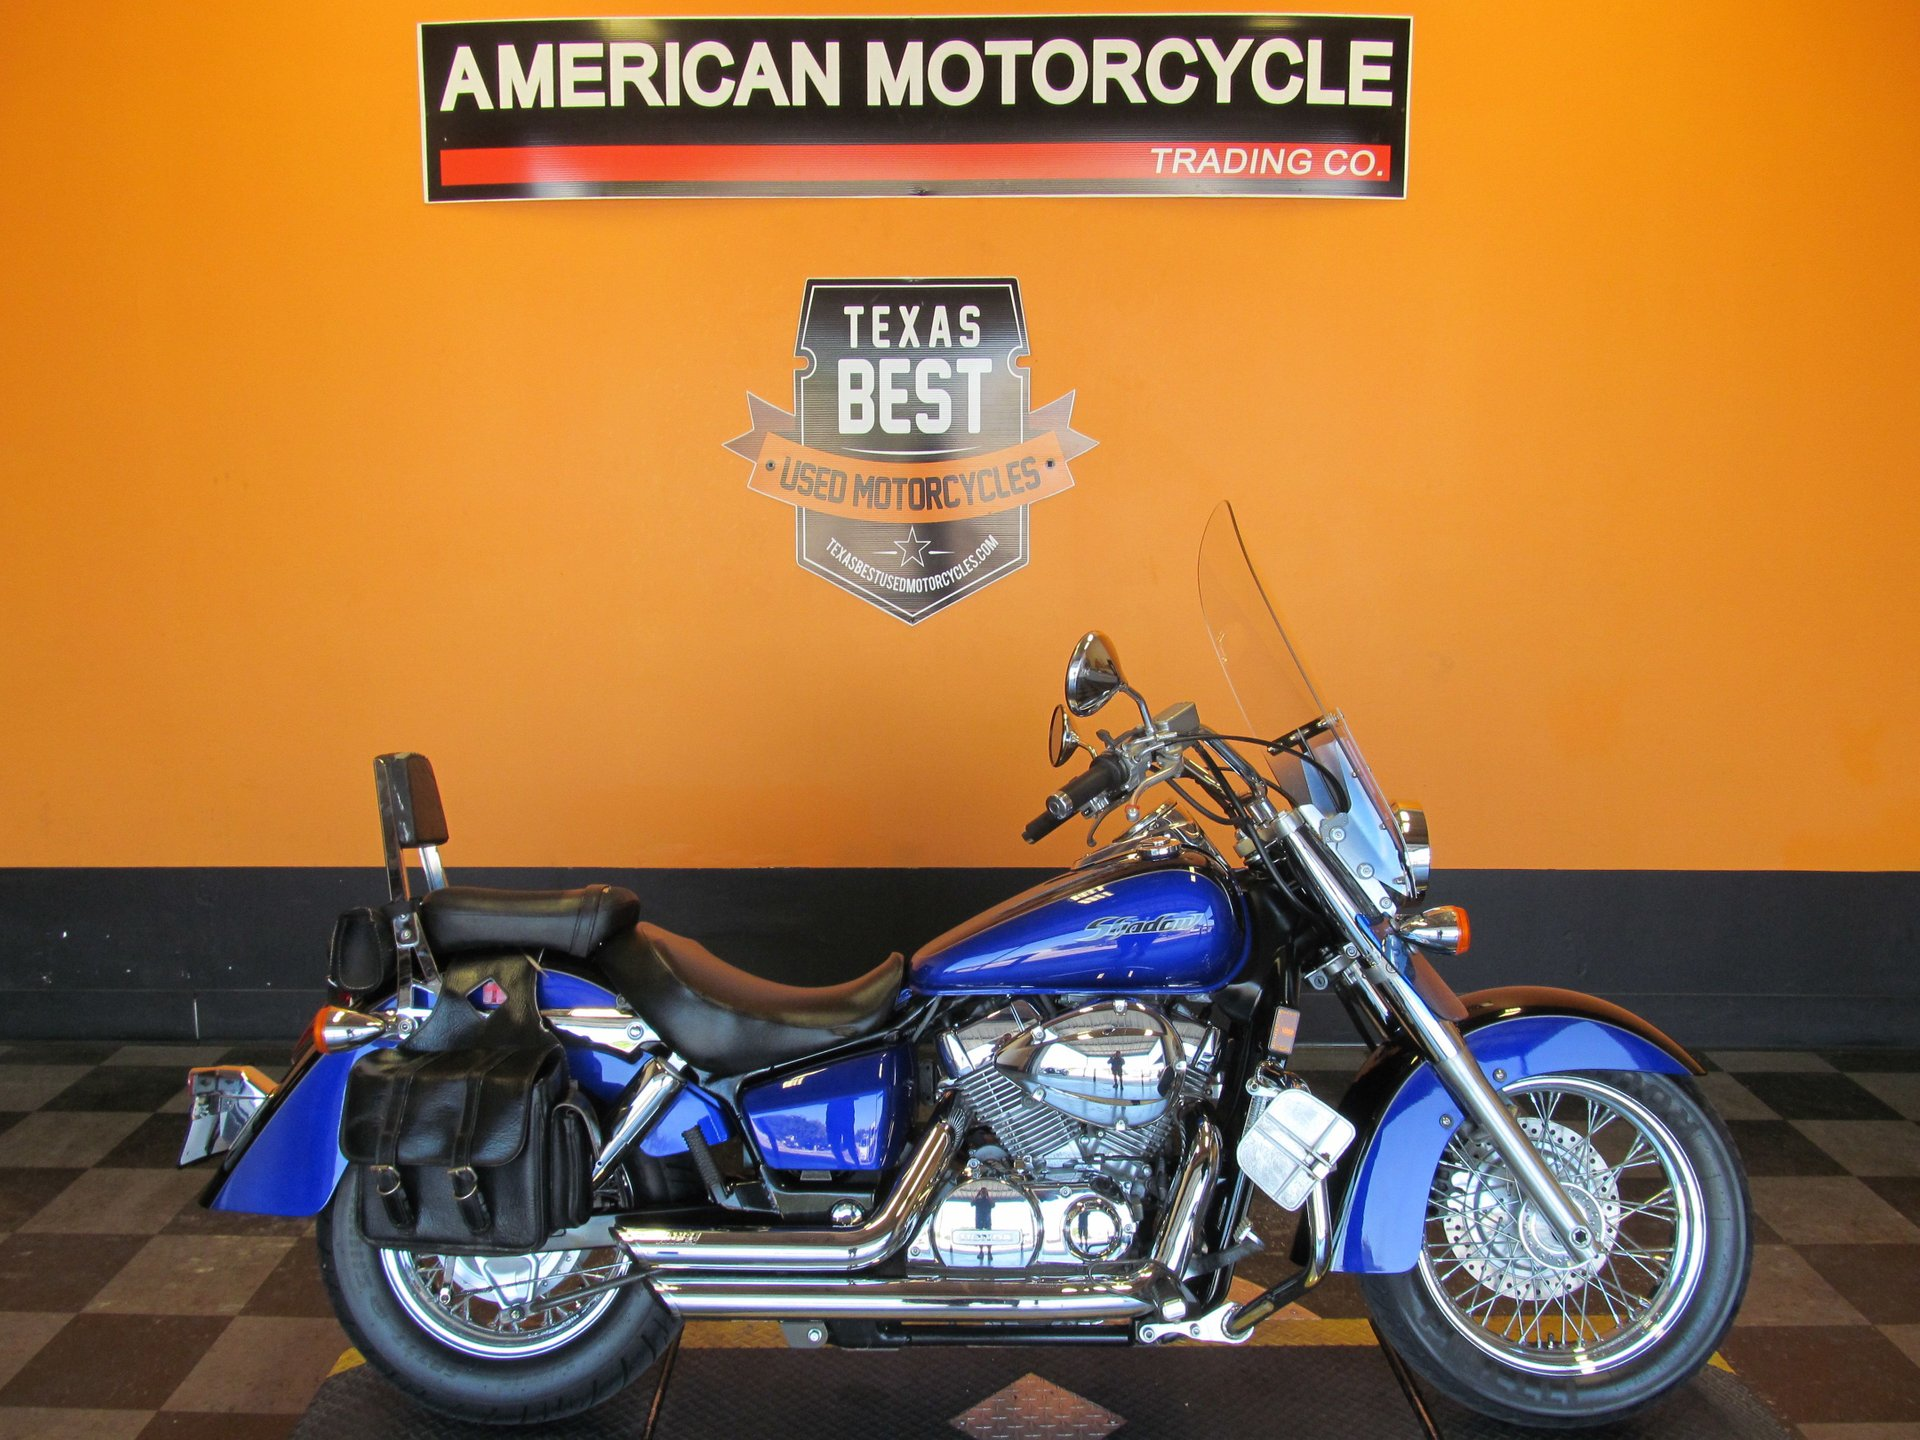 2005 honda shadow aero vt750c